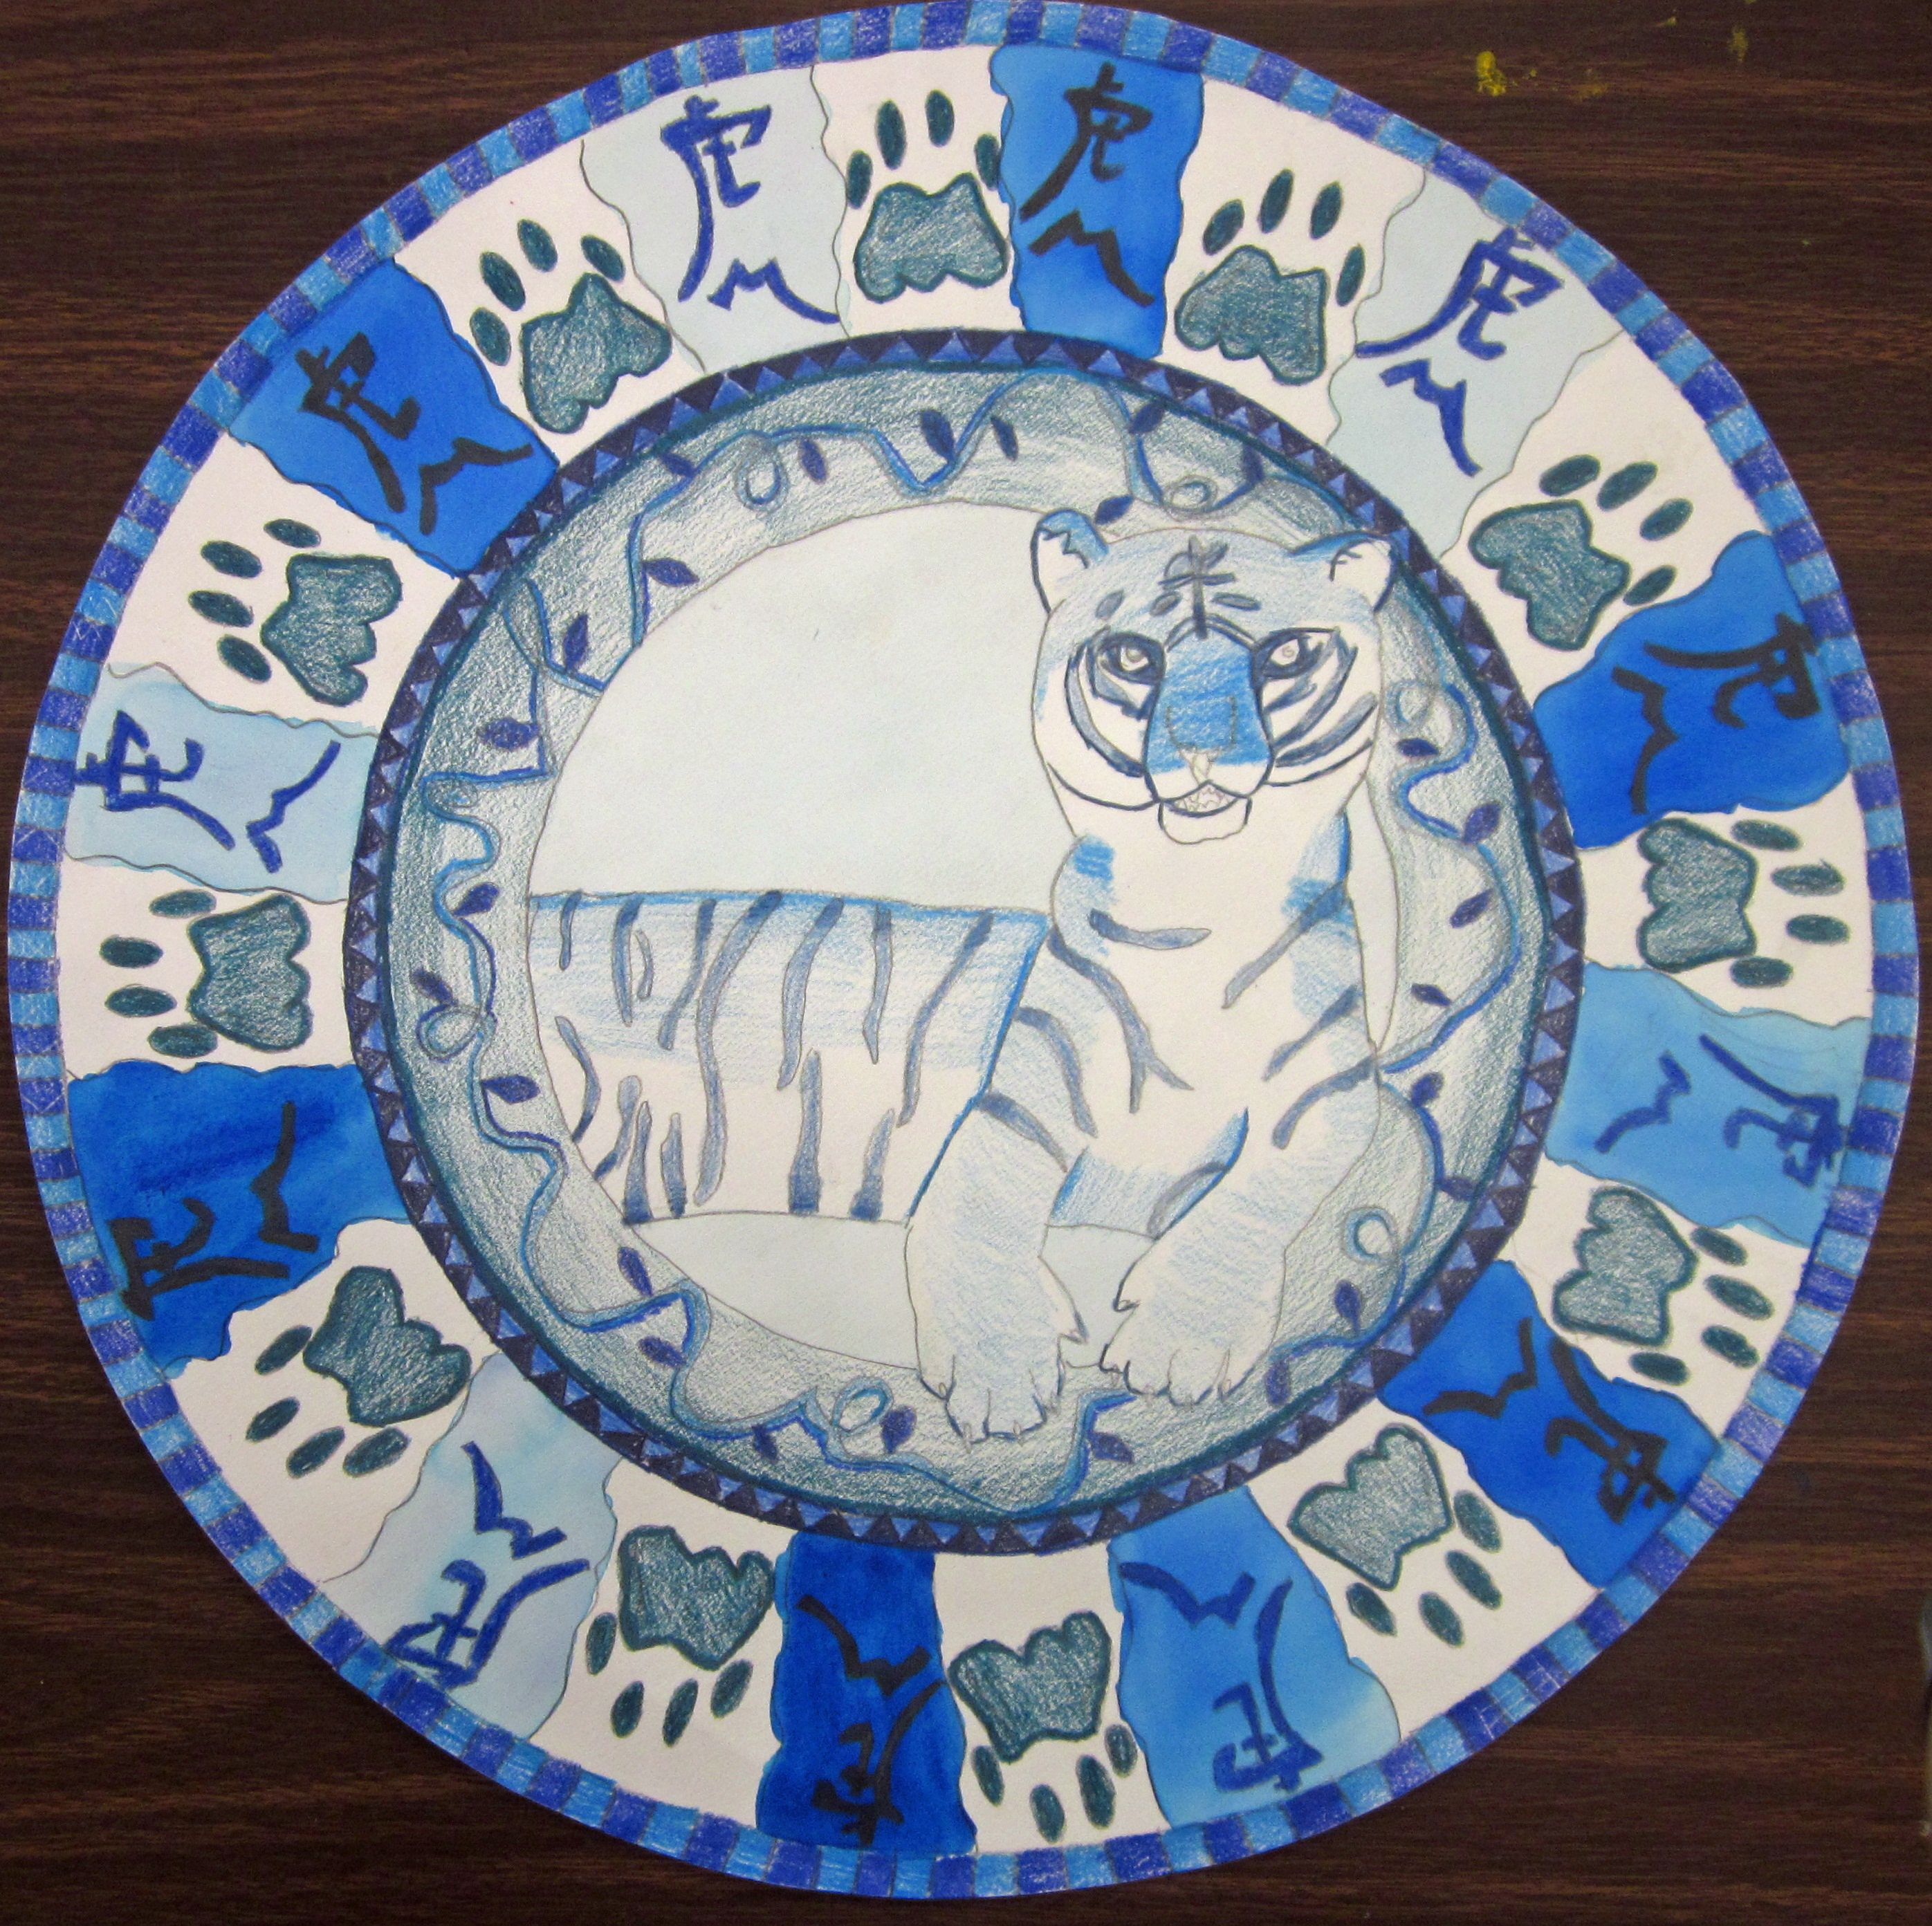 Brittany S Chinese Blue Amp White Plate Design 8th Grade Brookland Middle School